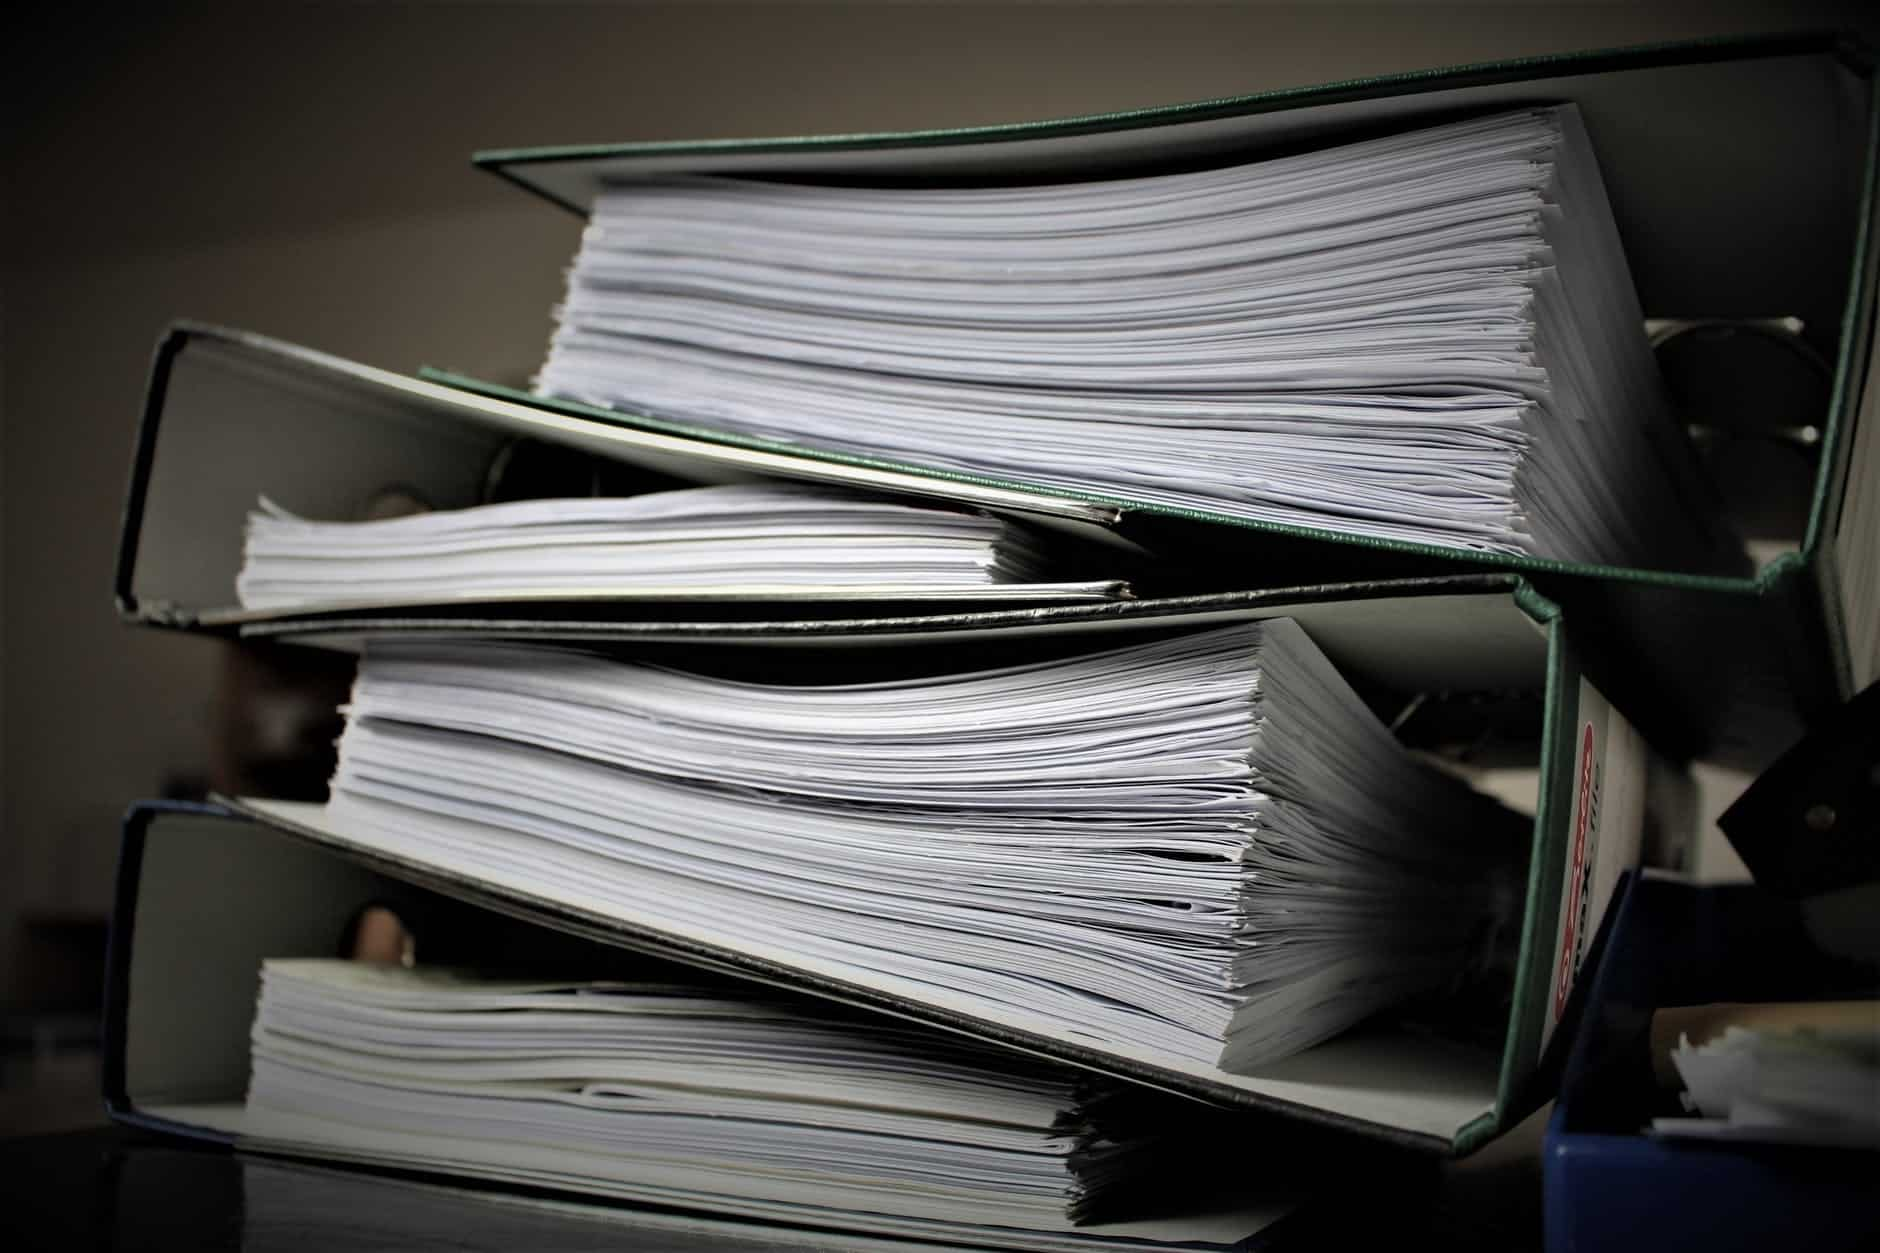 Binders of papers going over the VA rule change